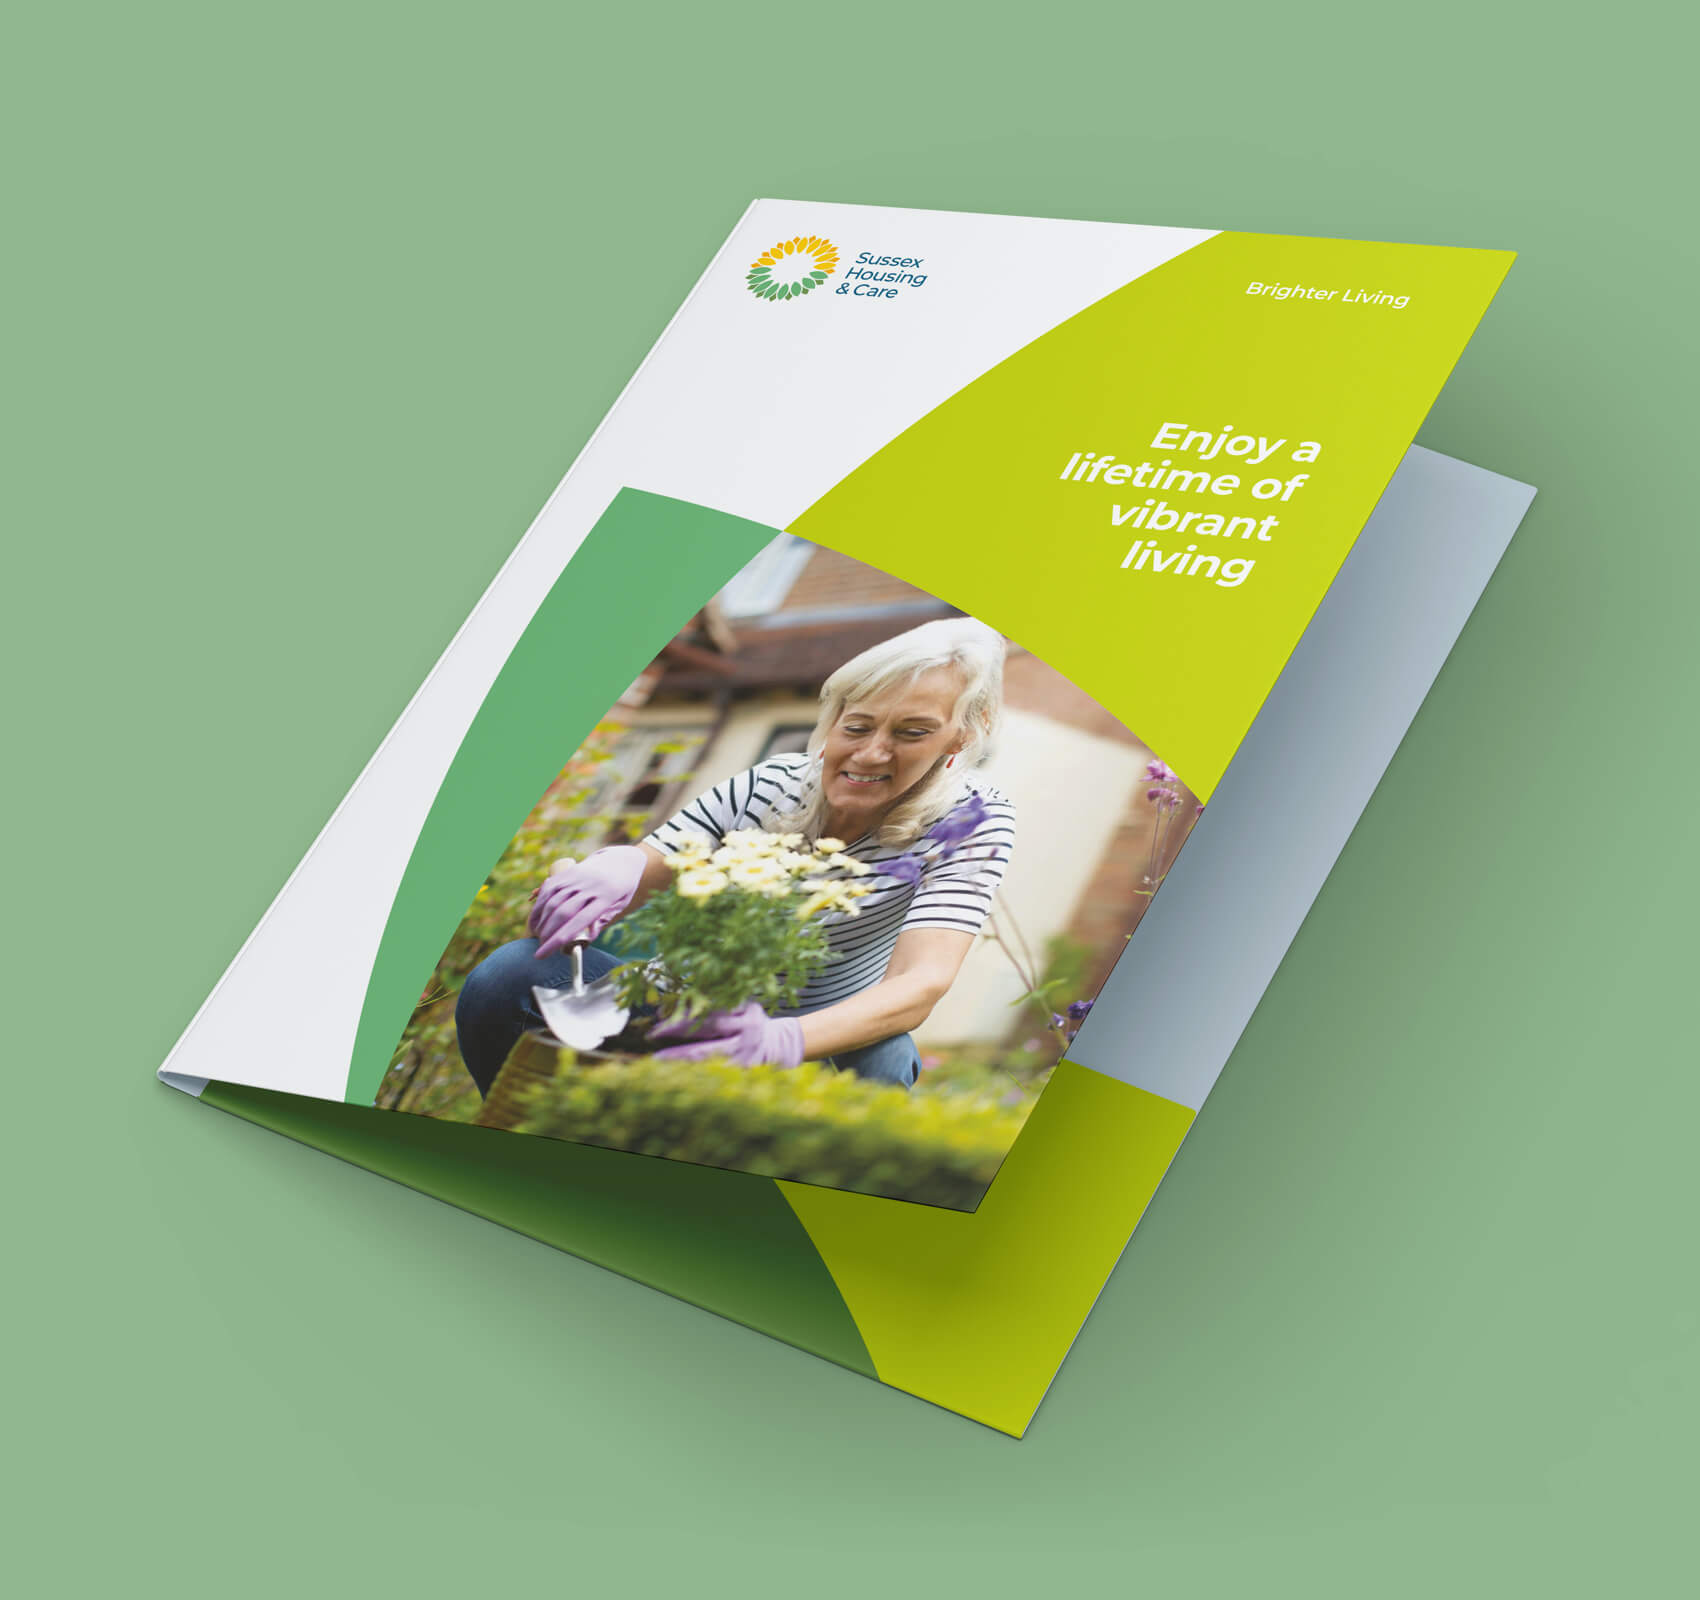 Sussex Housing & Care folder